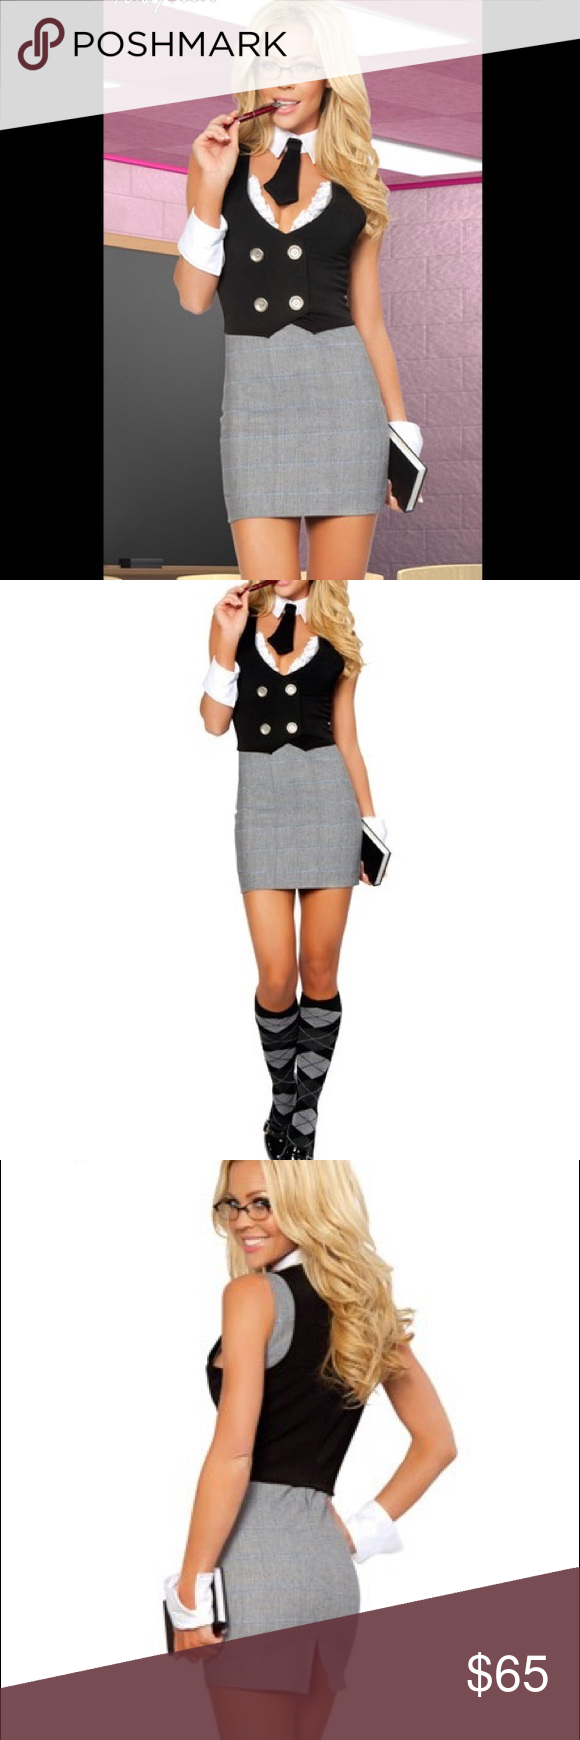 NEW Sexy Librarian Halloween Costume Small Medium NWT | Sexy librarian Librarian costume and Dress vest & NEW Sexy Librarian Halloween Costume Small Medium NWT | Sexy ...